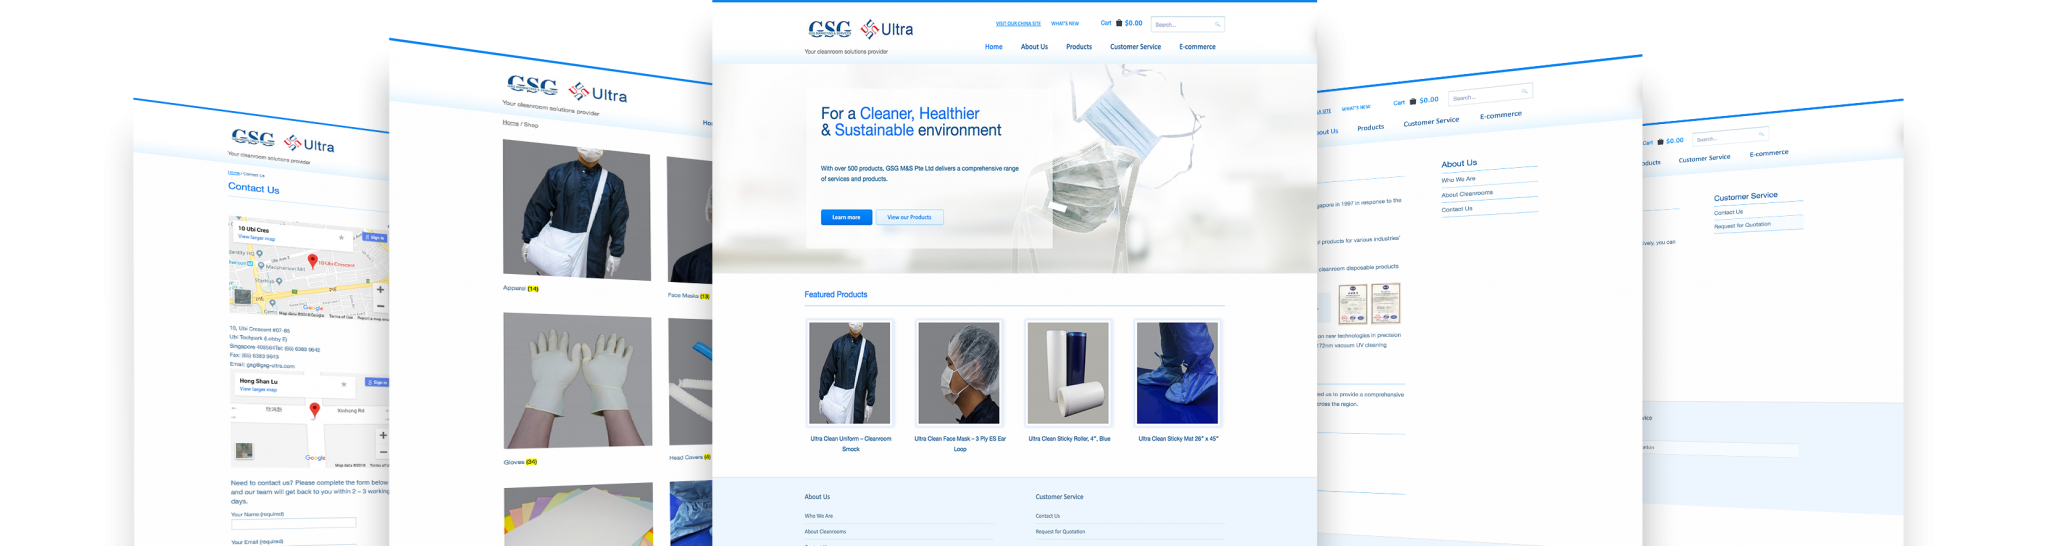 gsg 5 display web design